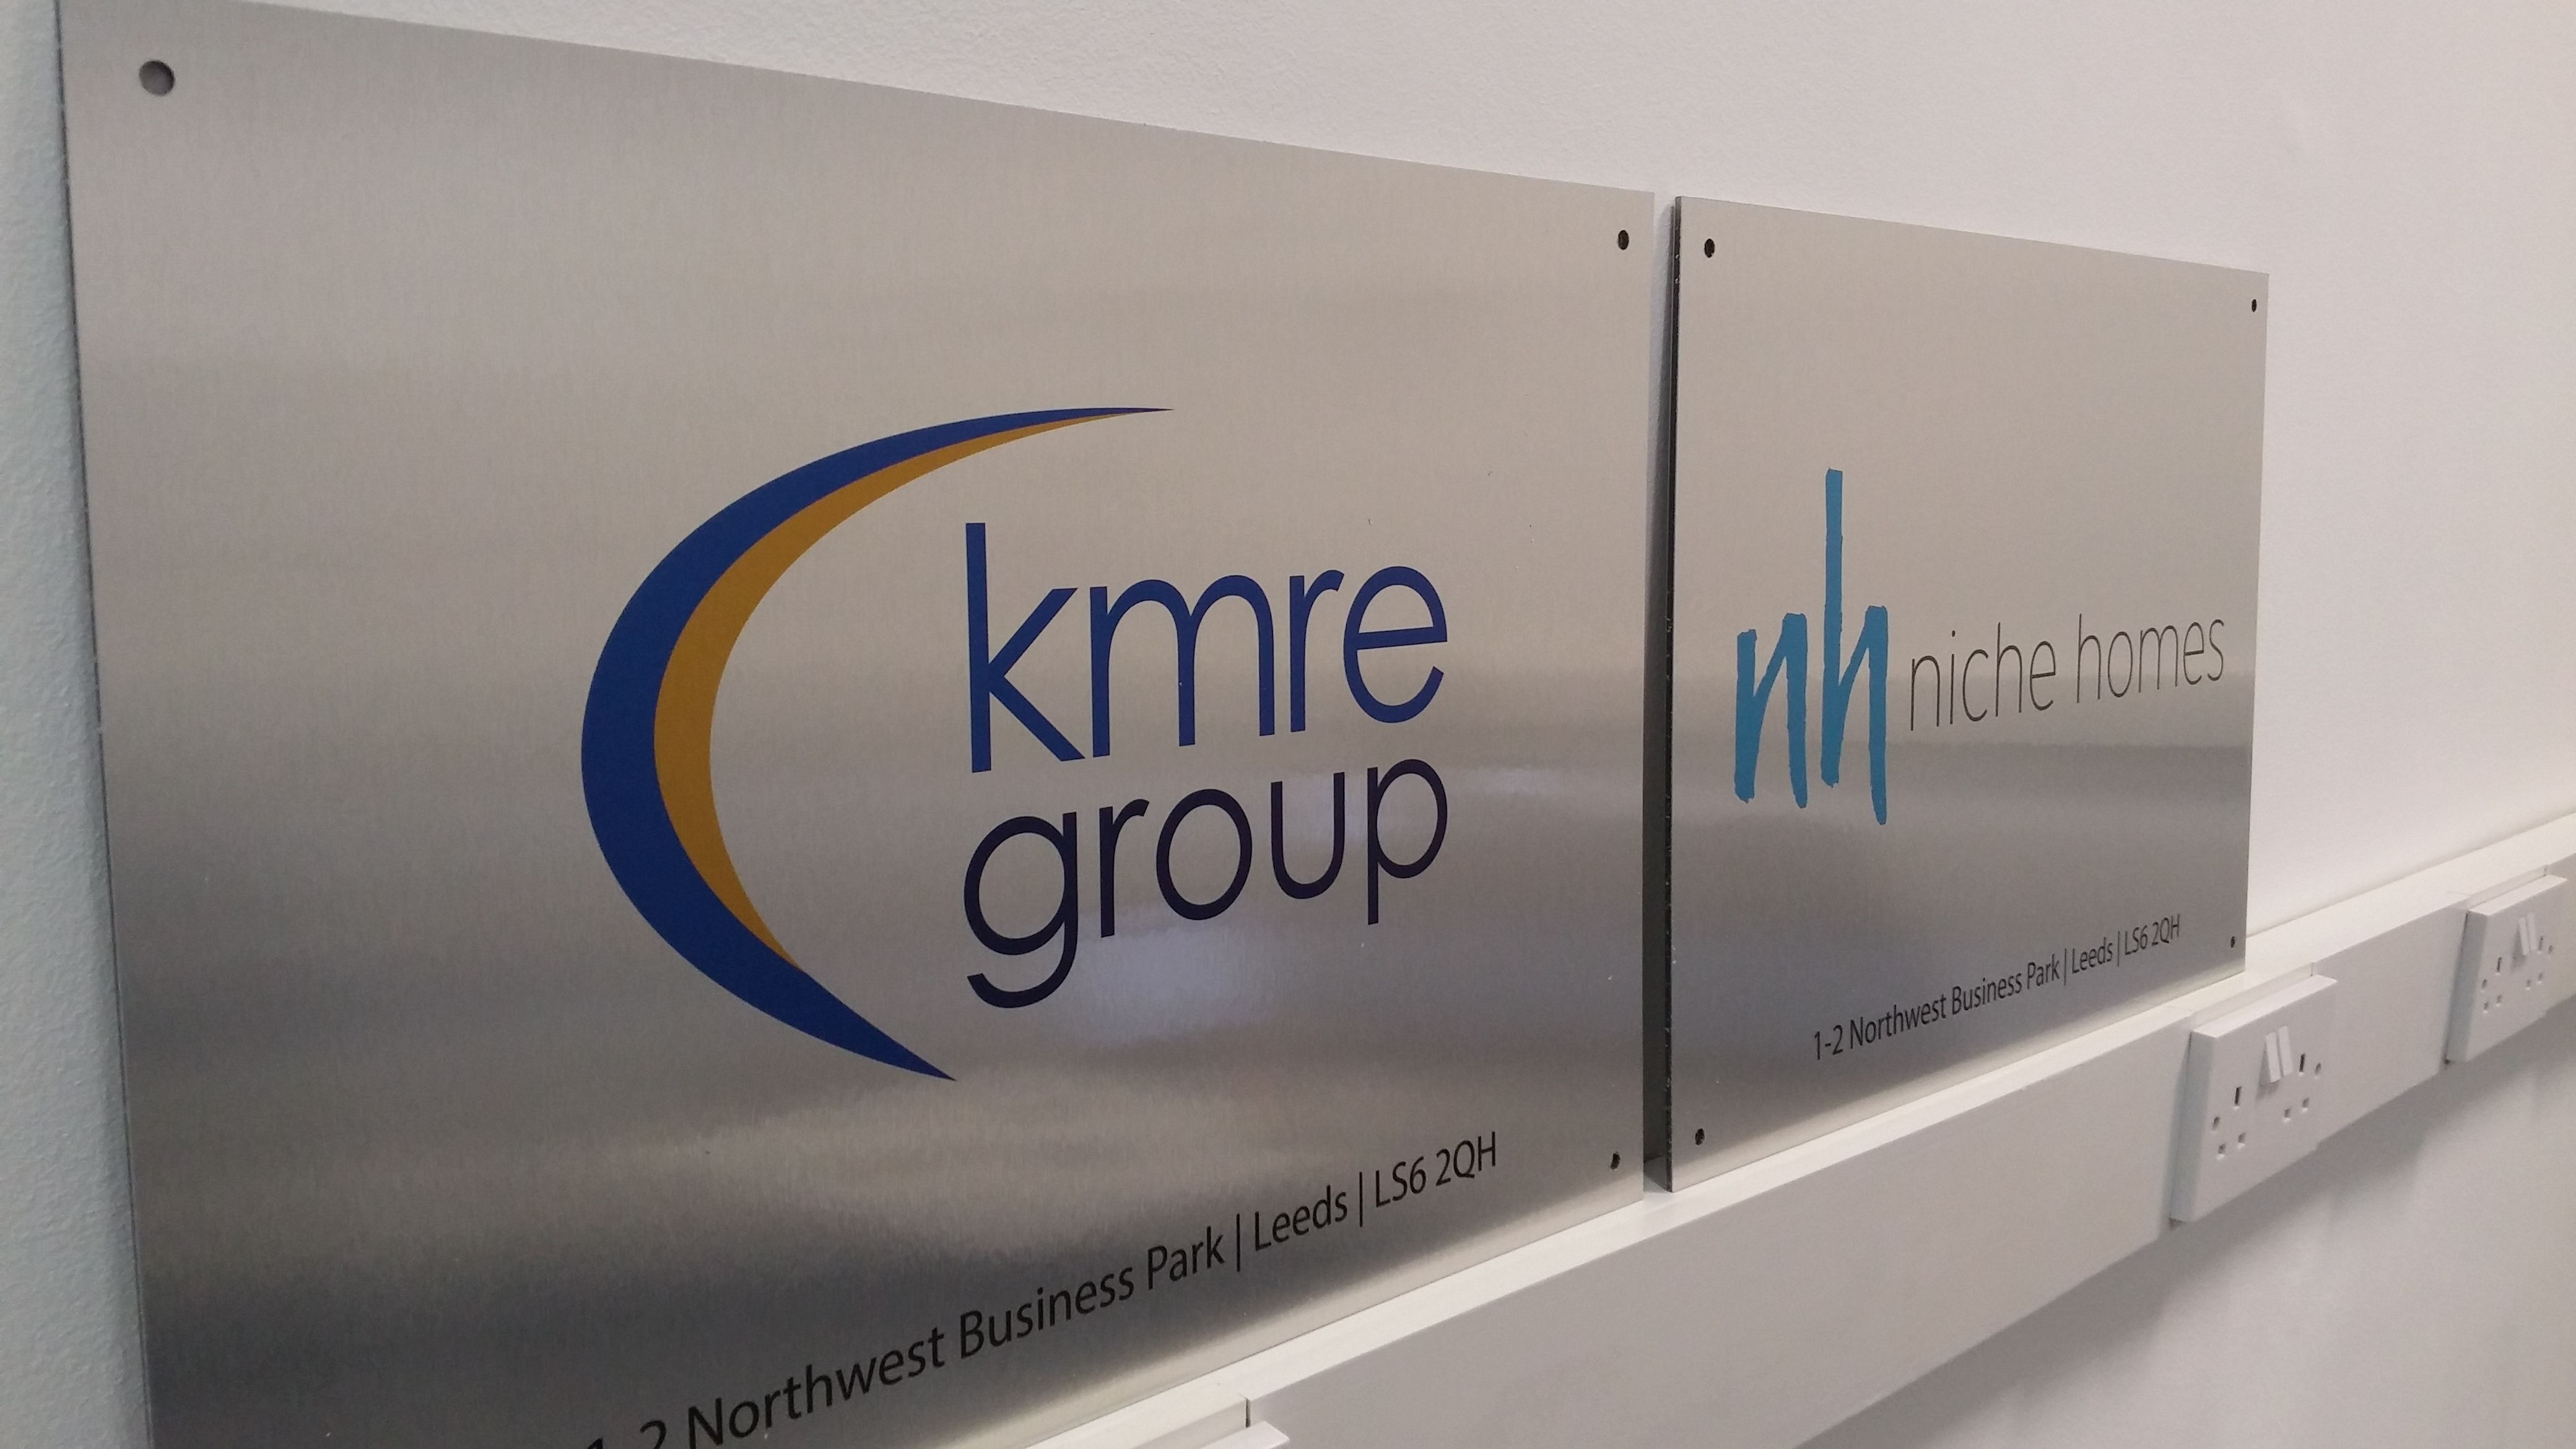 Brushed Aluminium Signs For Kmre Niche Homes Aluminum Signs Brushed Aluminum Signage